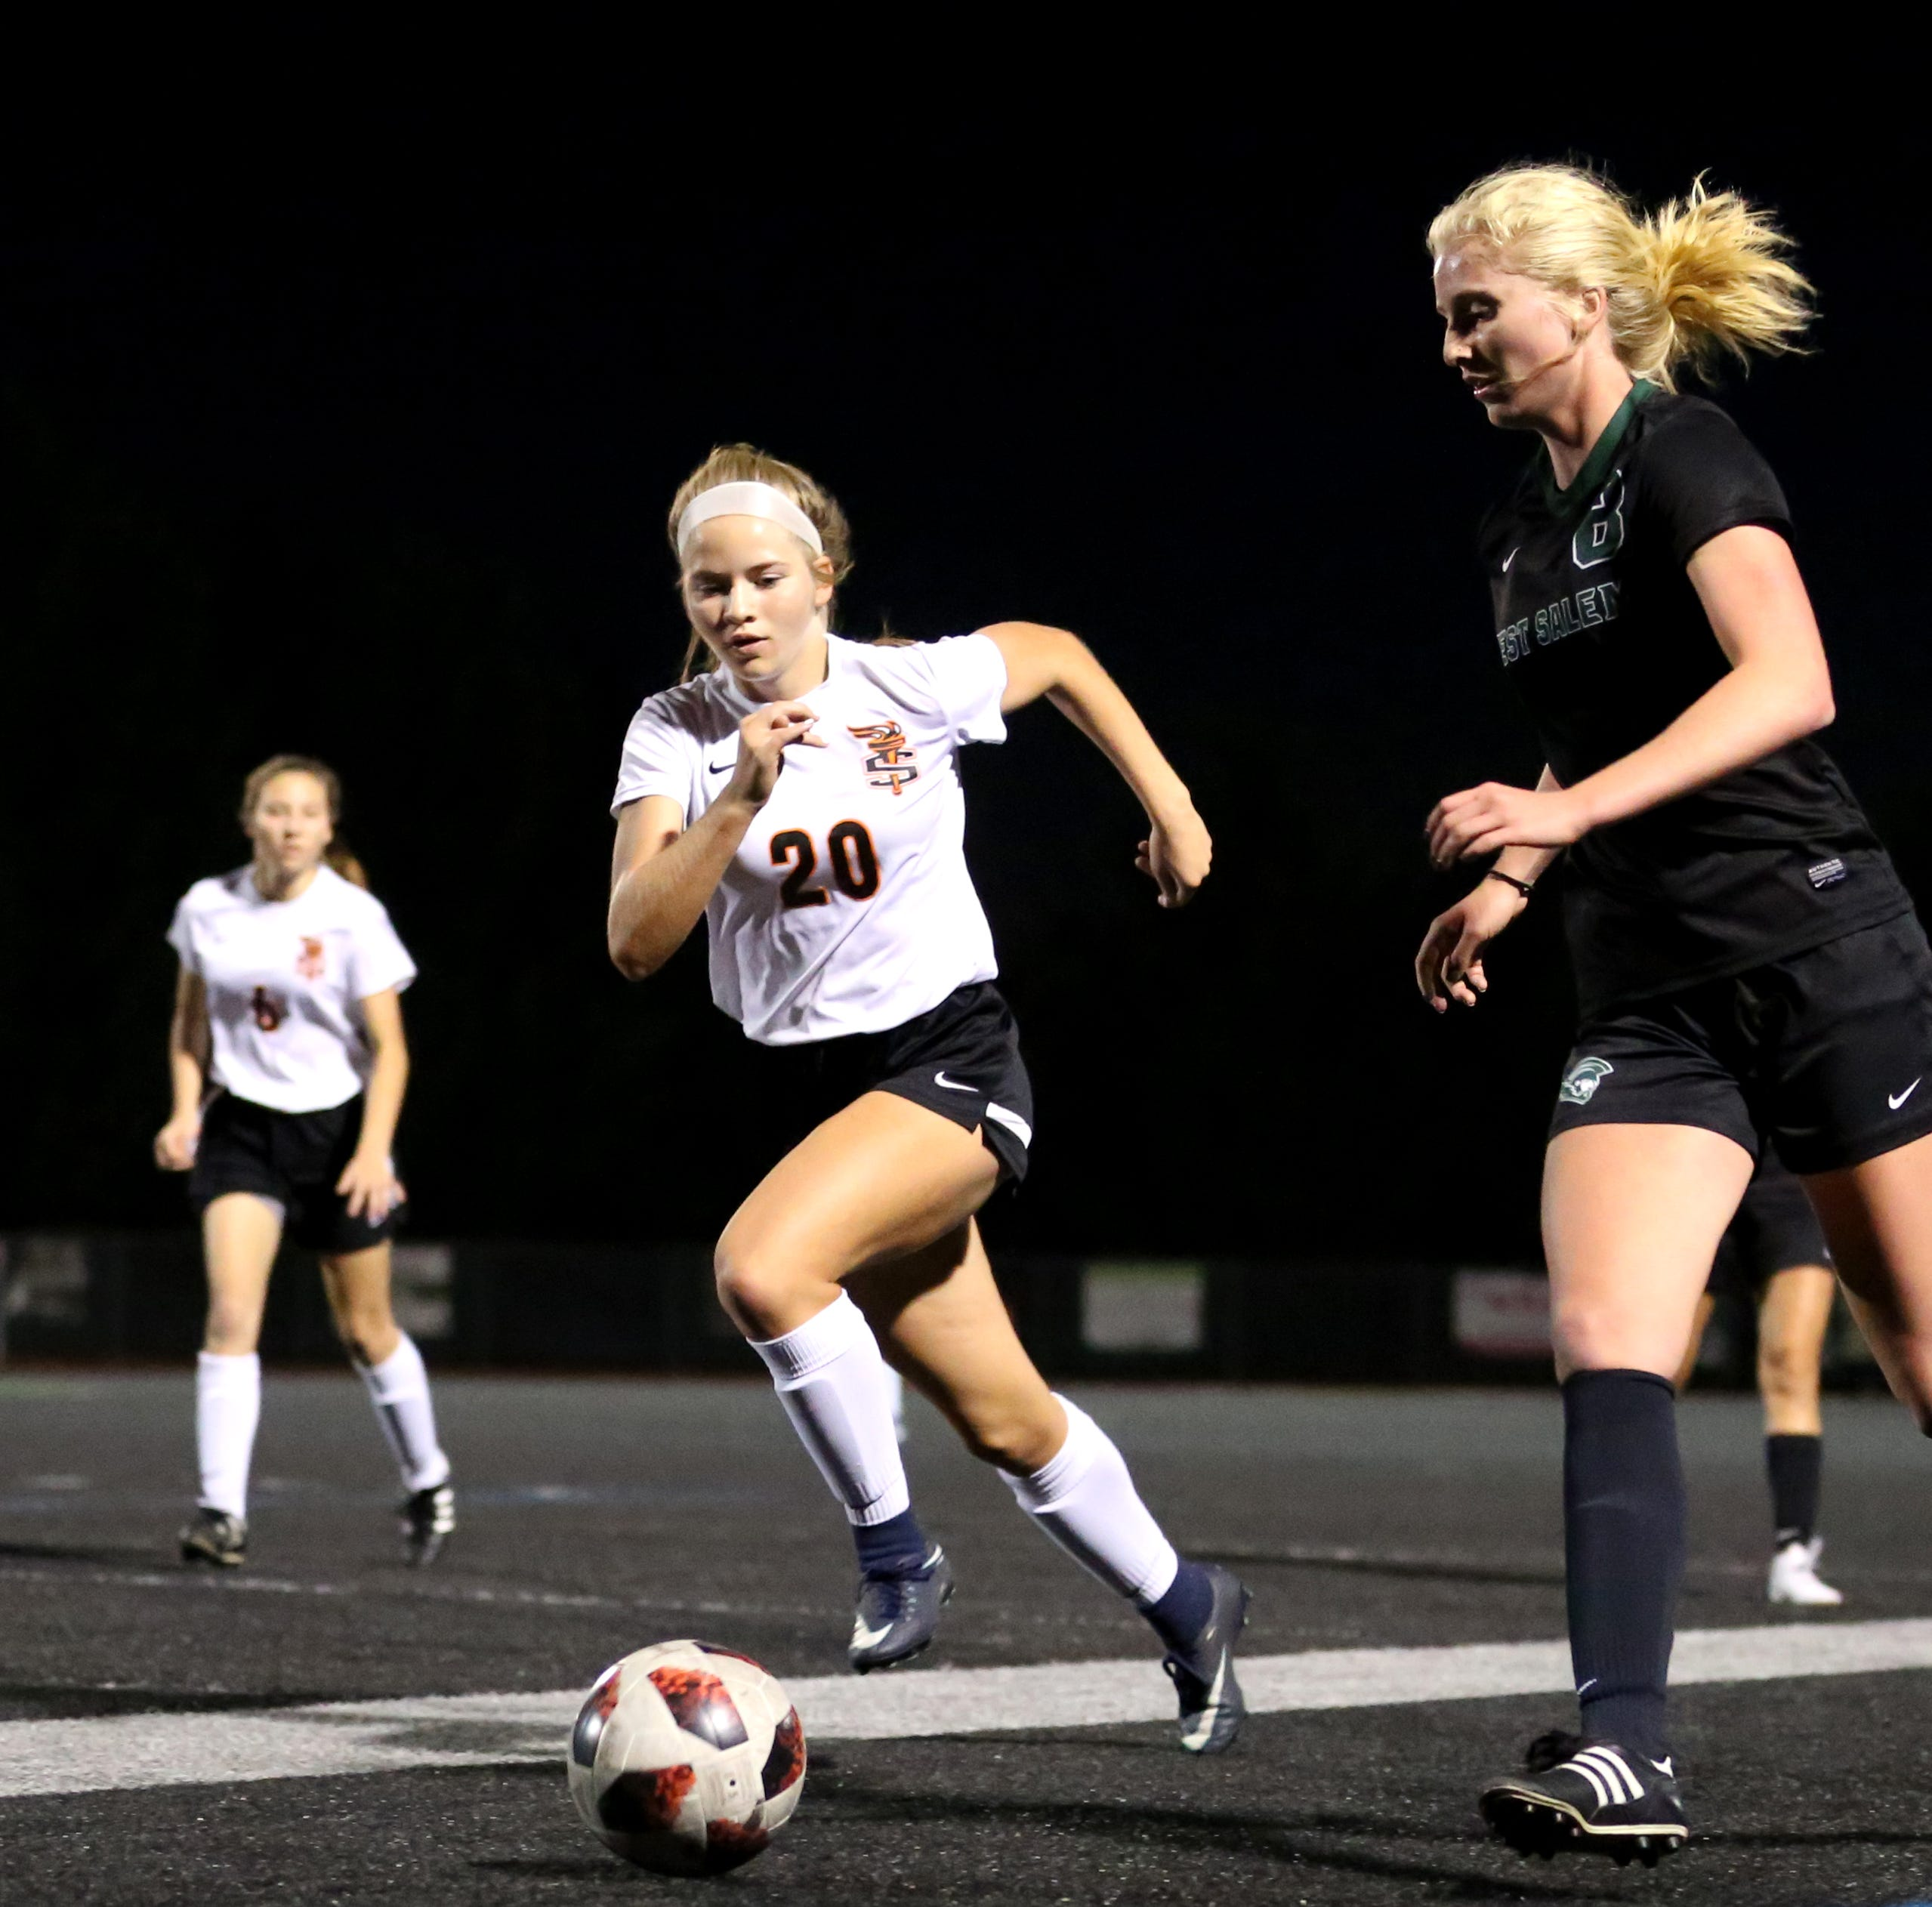 West Salem girls soccer loses Friday, finishes second in Mountain Valley Conference